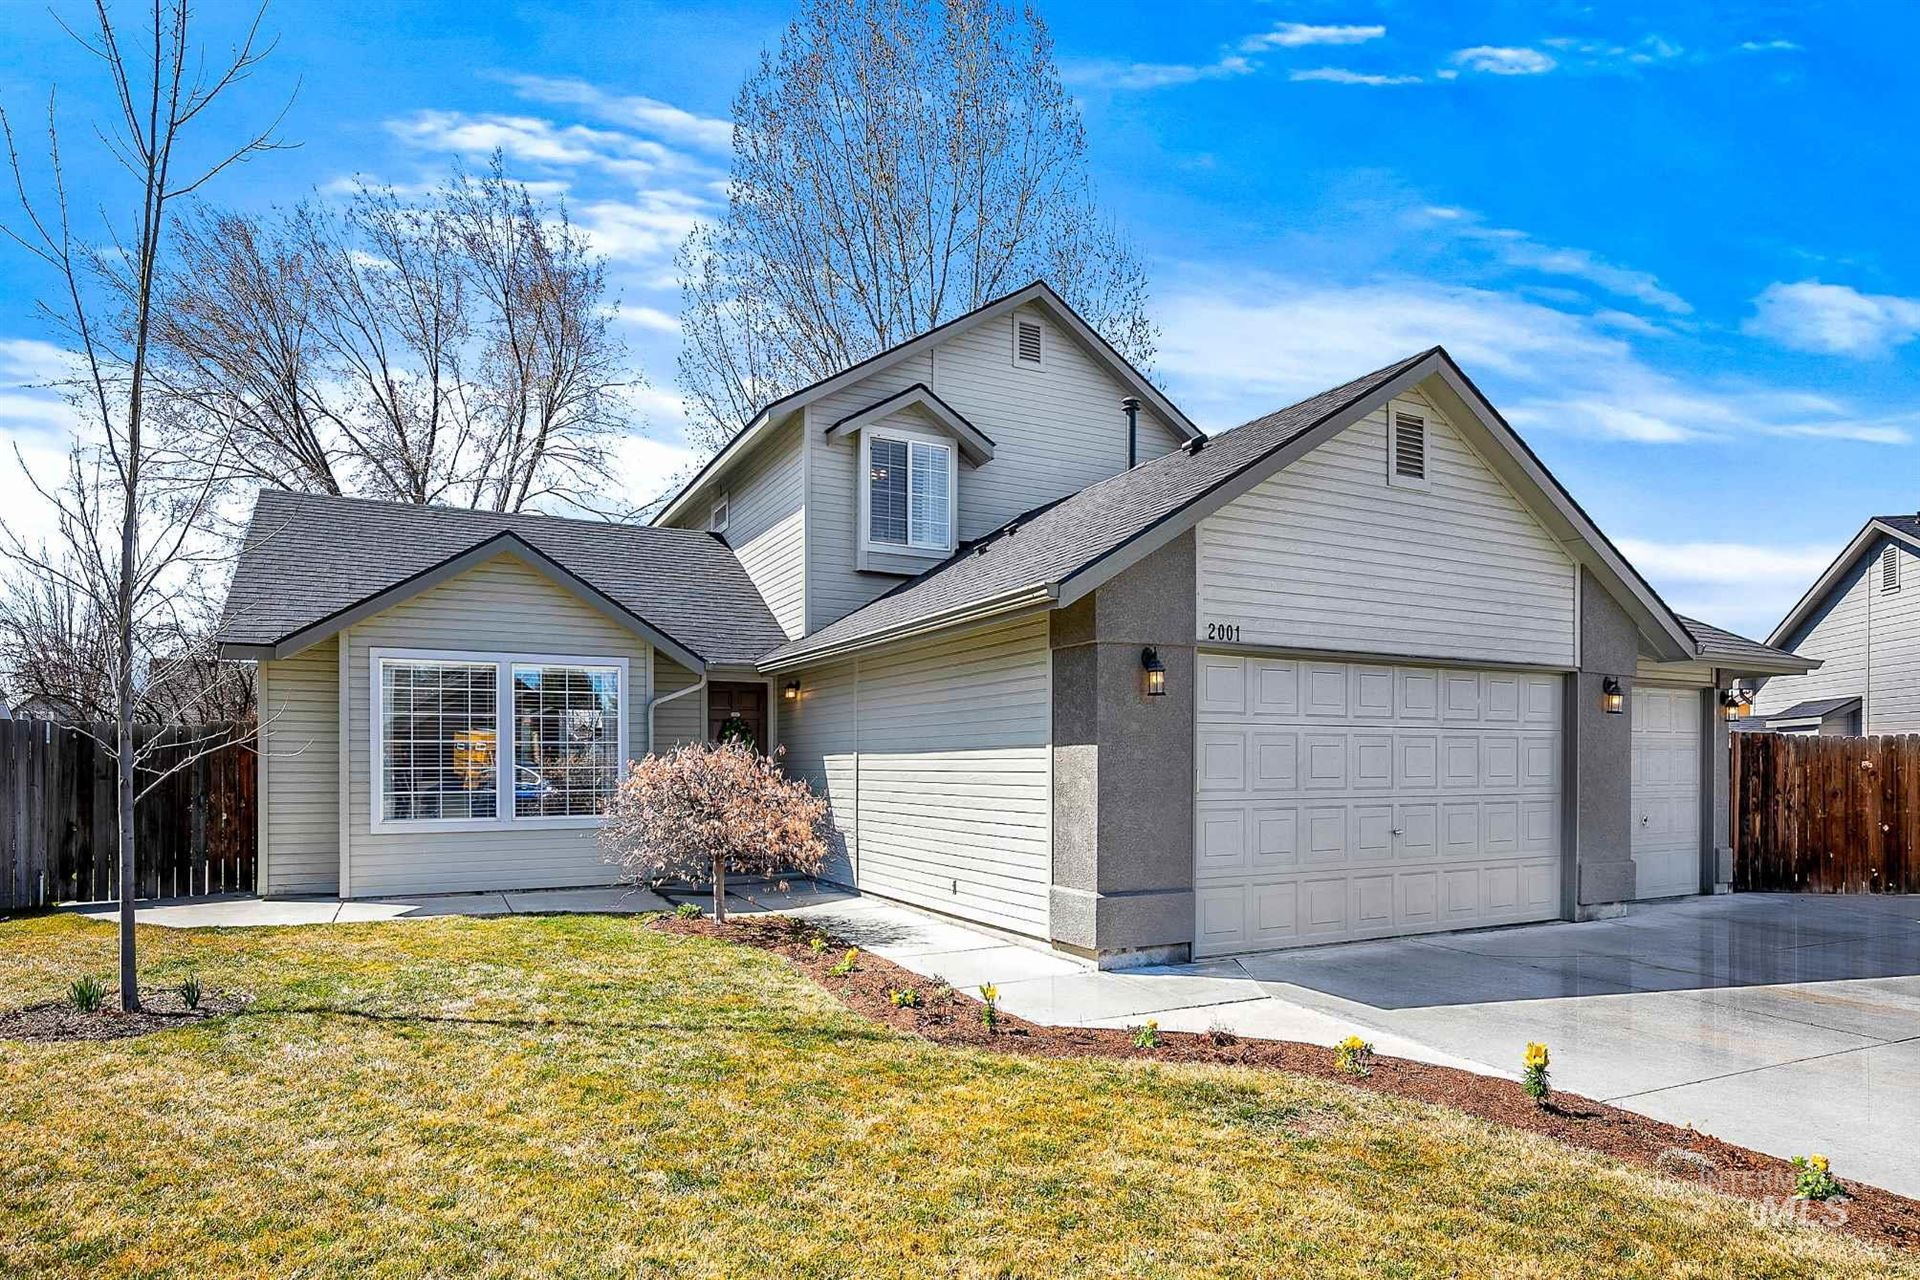 Photo of 2001 S Peppercorn Place, Boise, ID 83709-2249 (MLS # 98798776)